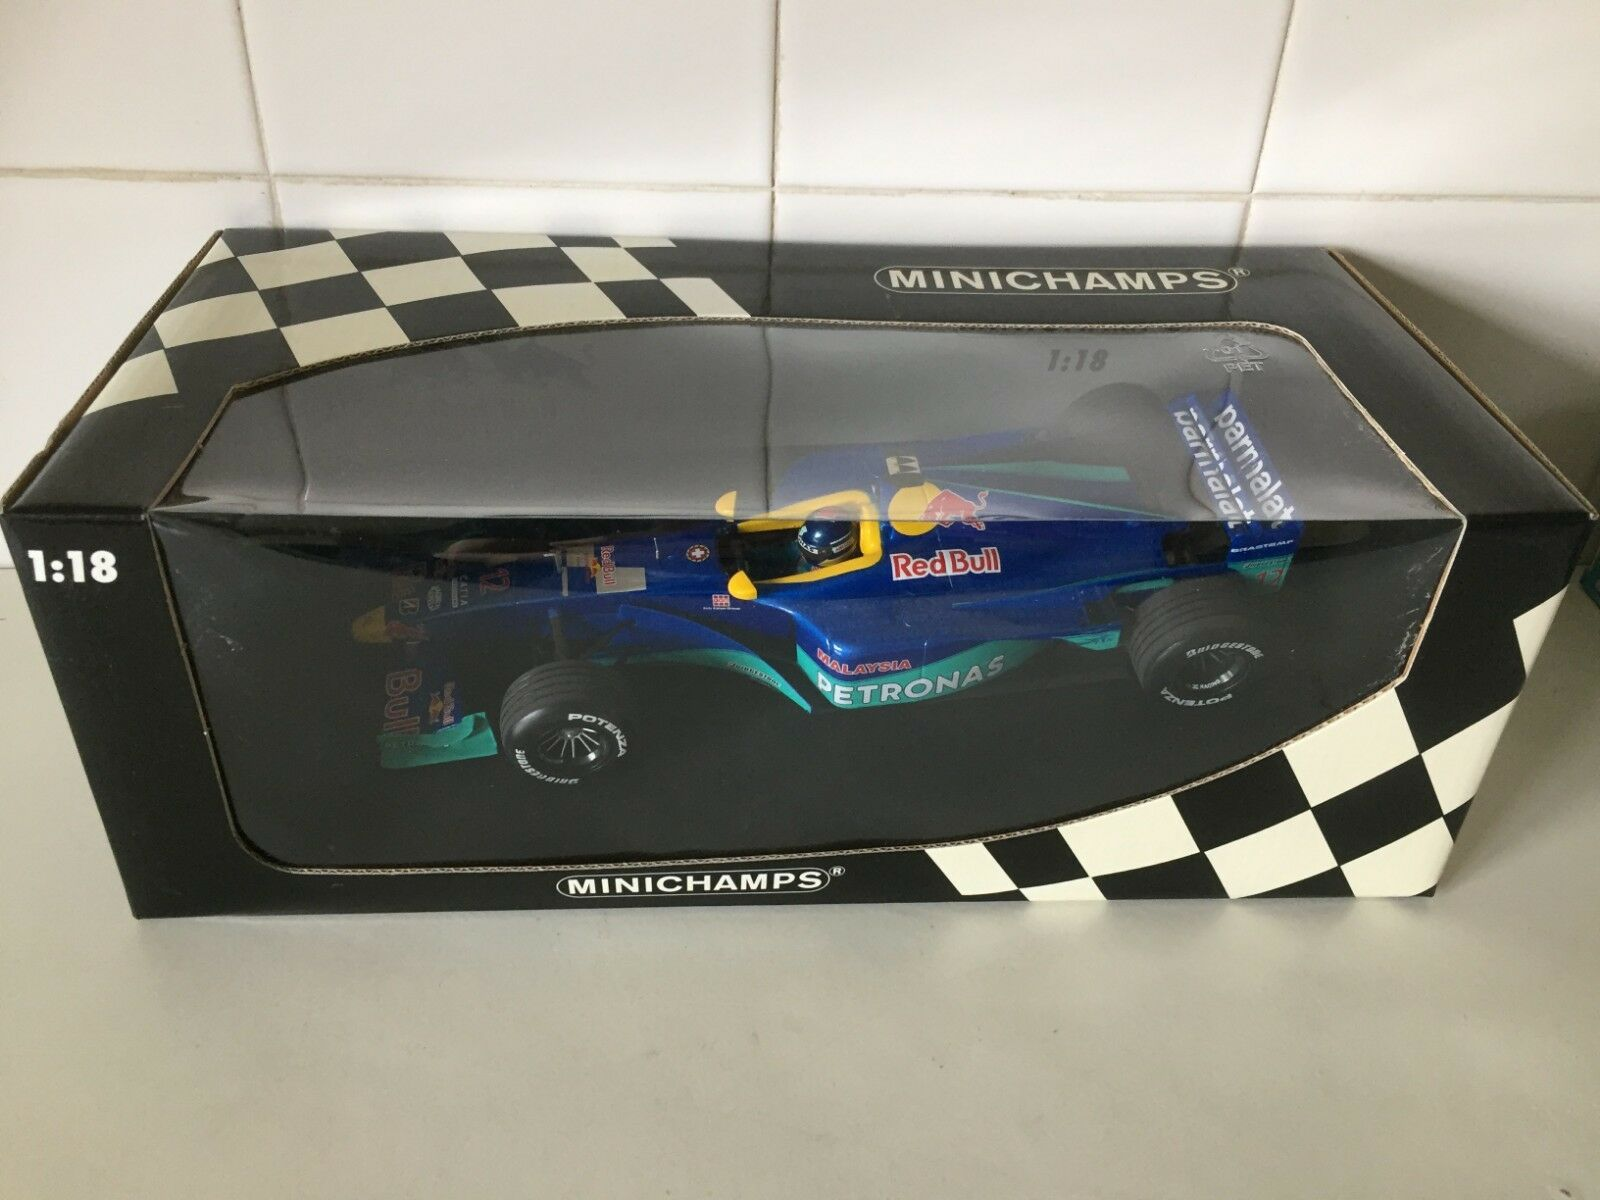 MINICHAMPS   F1 - SAUBER F1 TEAM - PEDRO  DINIZ  - 1 18 SCALE Modelll CAR